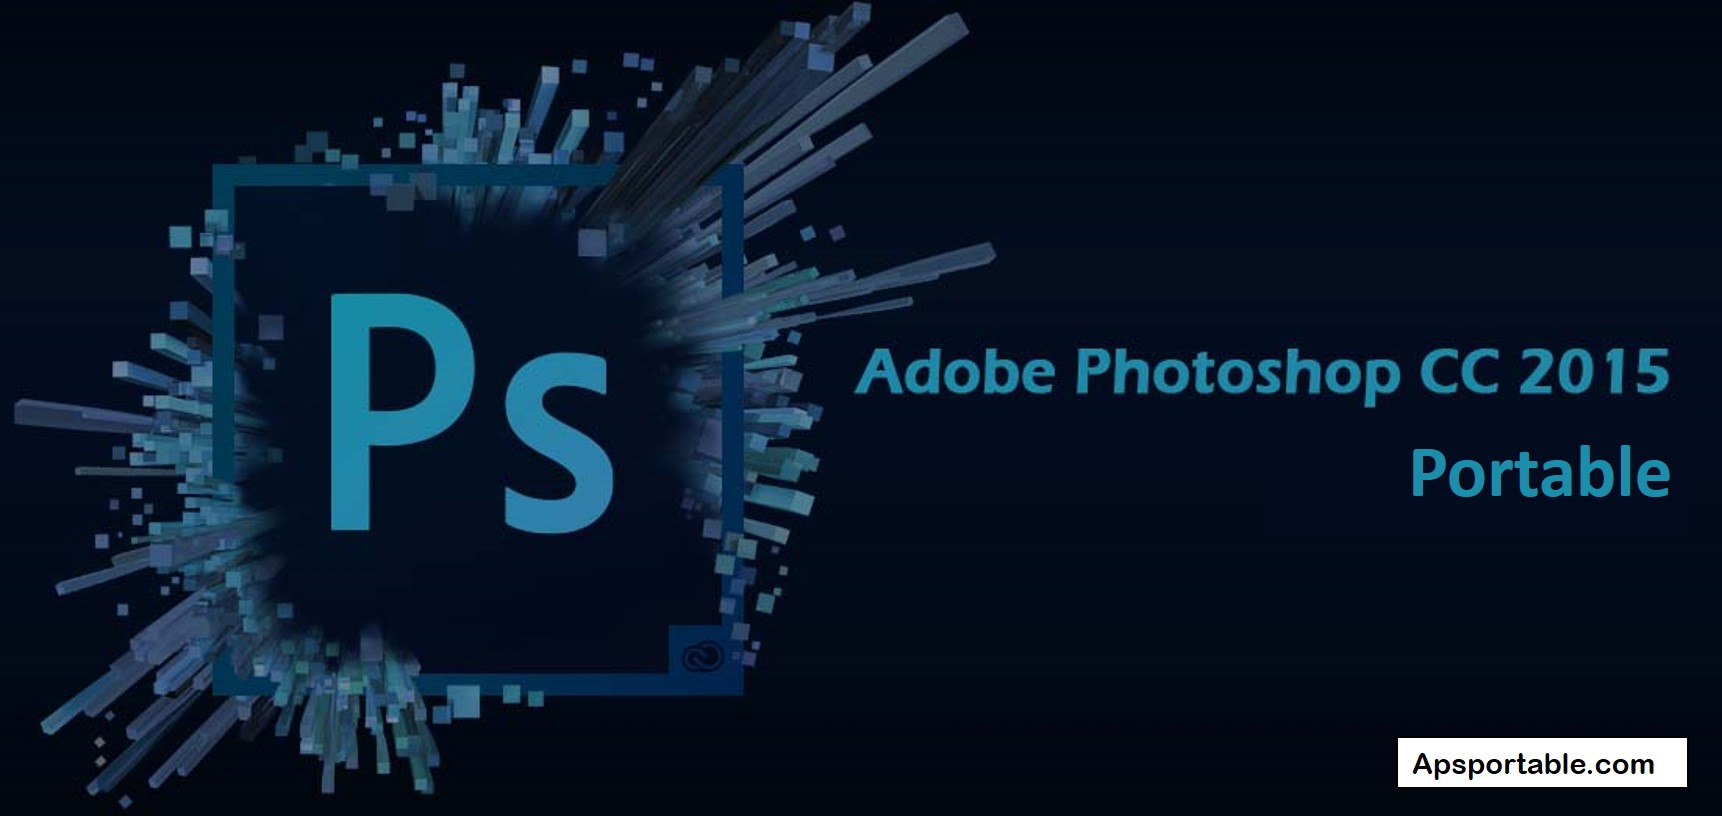 Portable Photoshop Adobe Photoshop Cc 2015 Portable Free Download